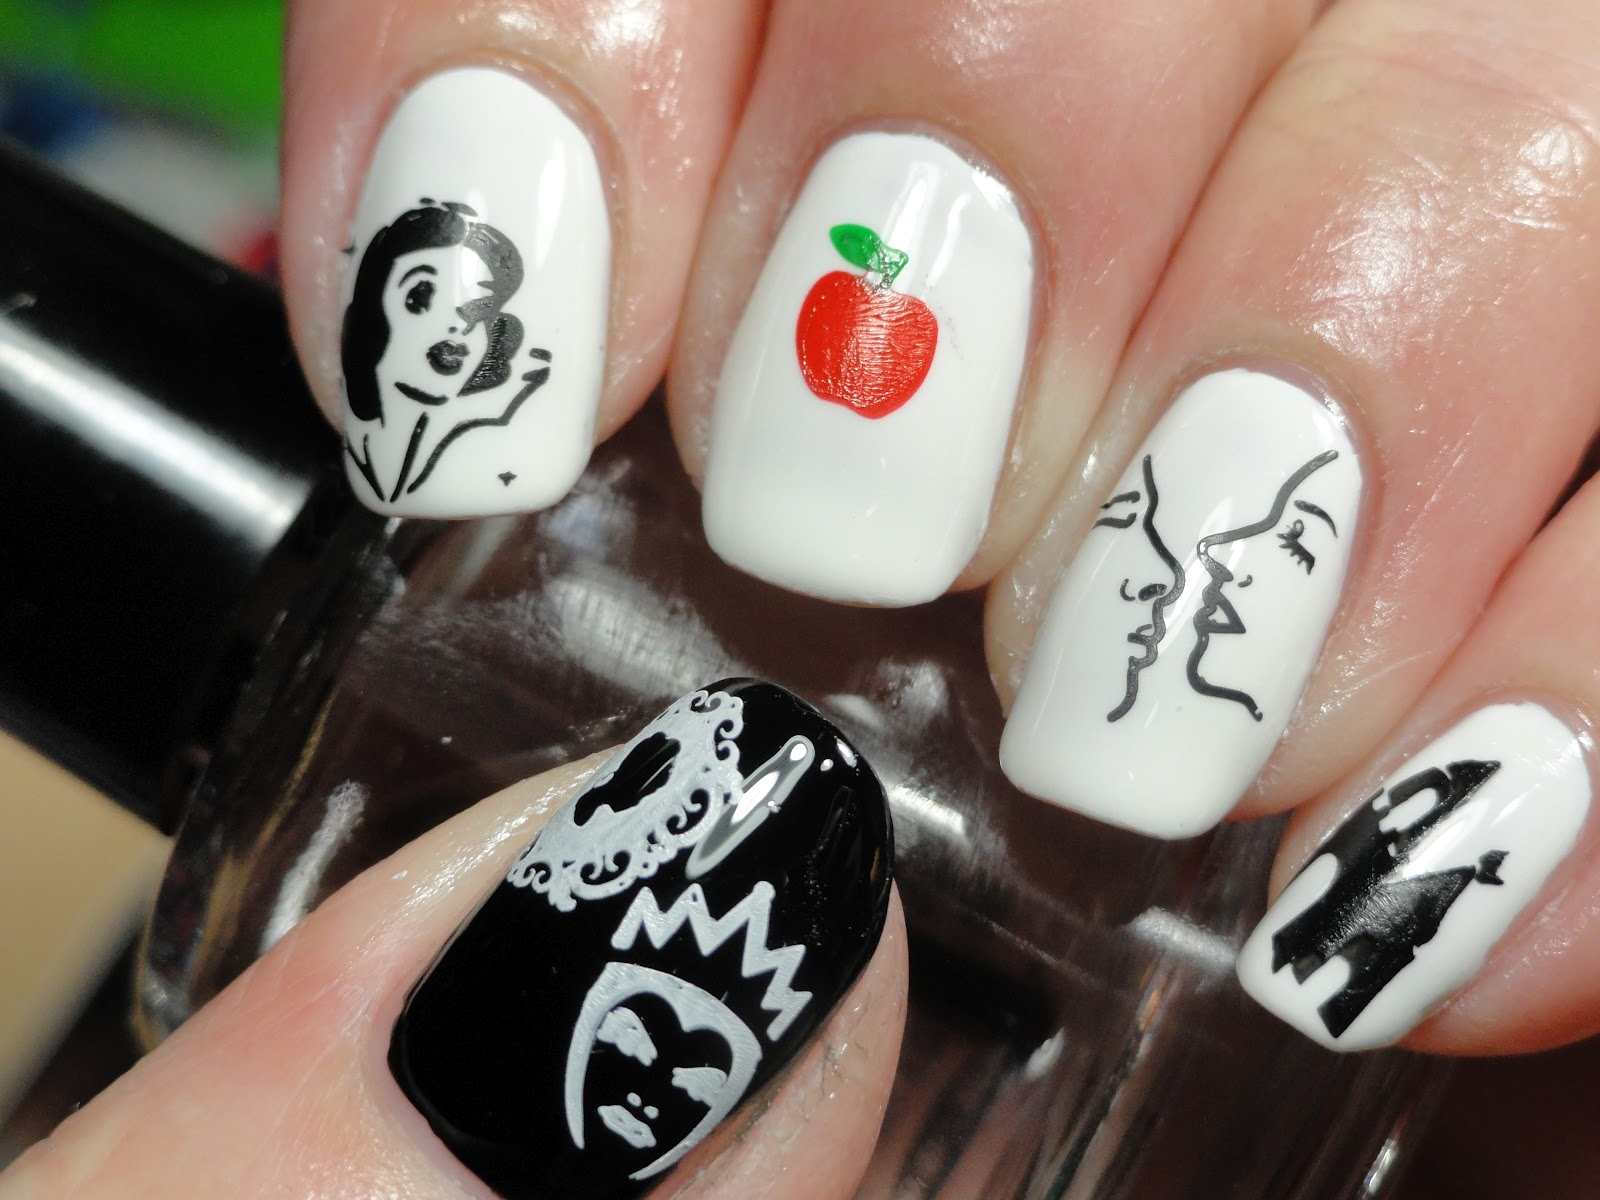 Canadian Nail Fanatic: Snow White for Poisonous Challenge